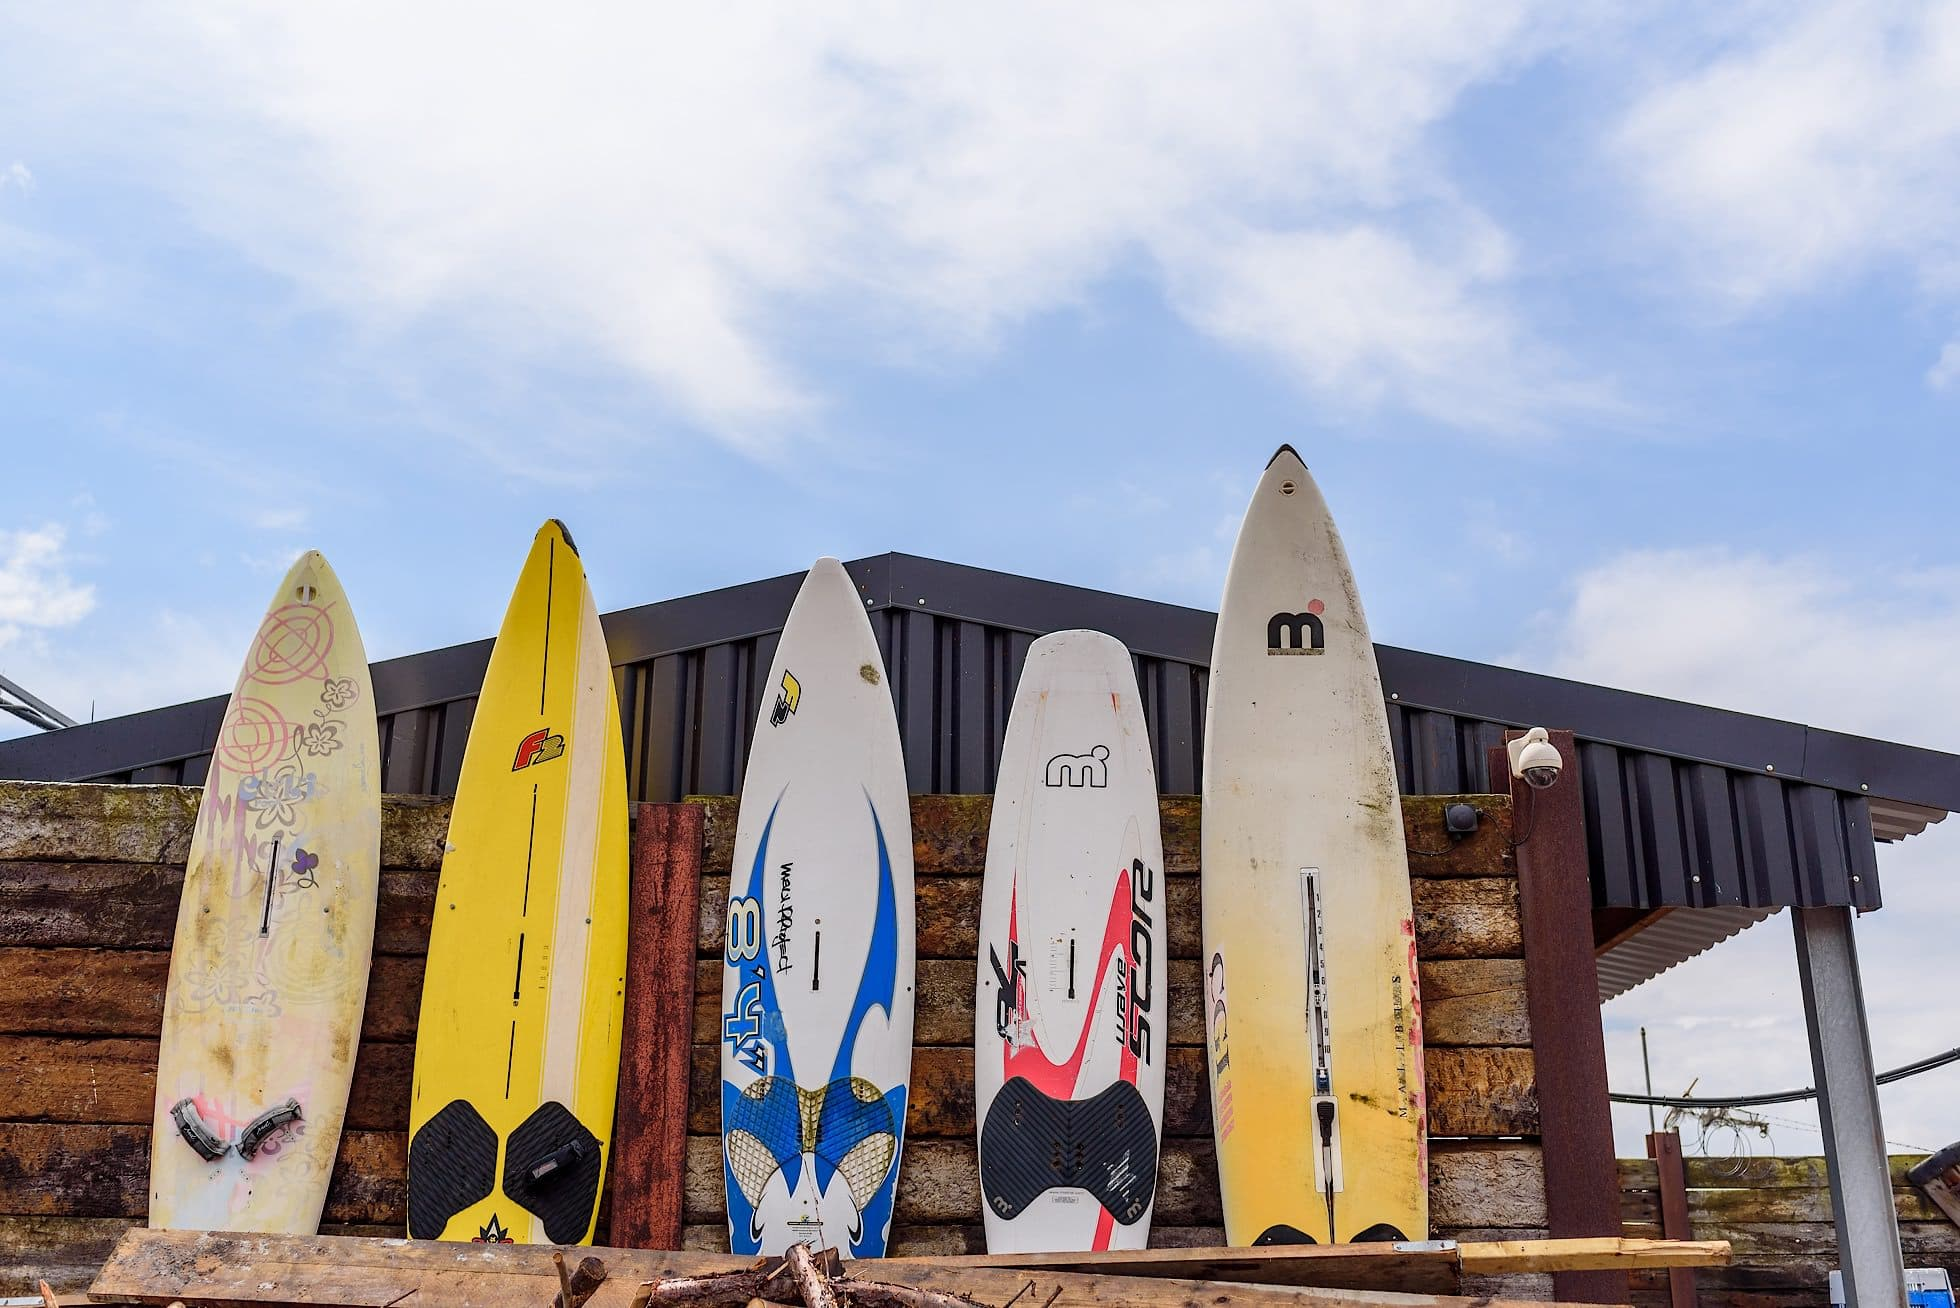 Surfboards outside the venue